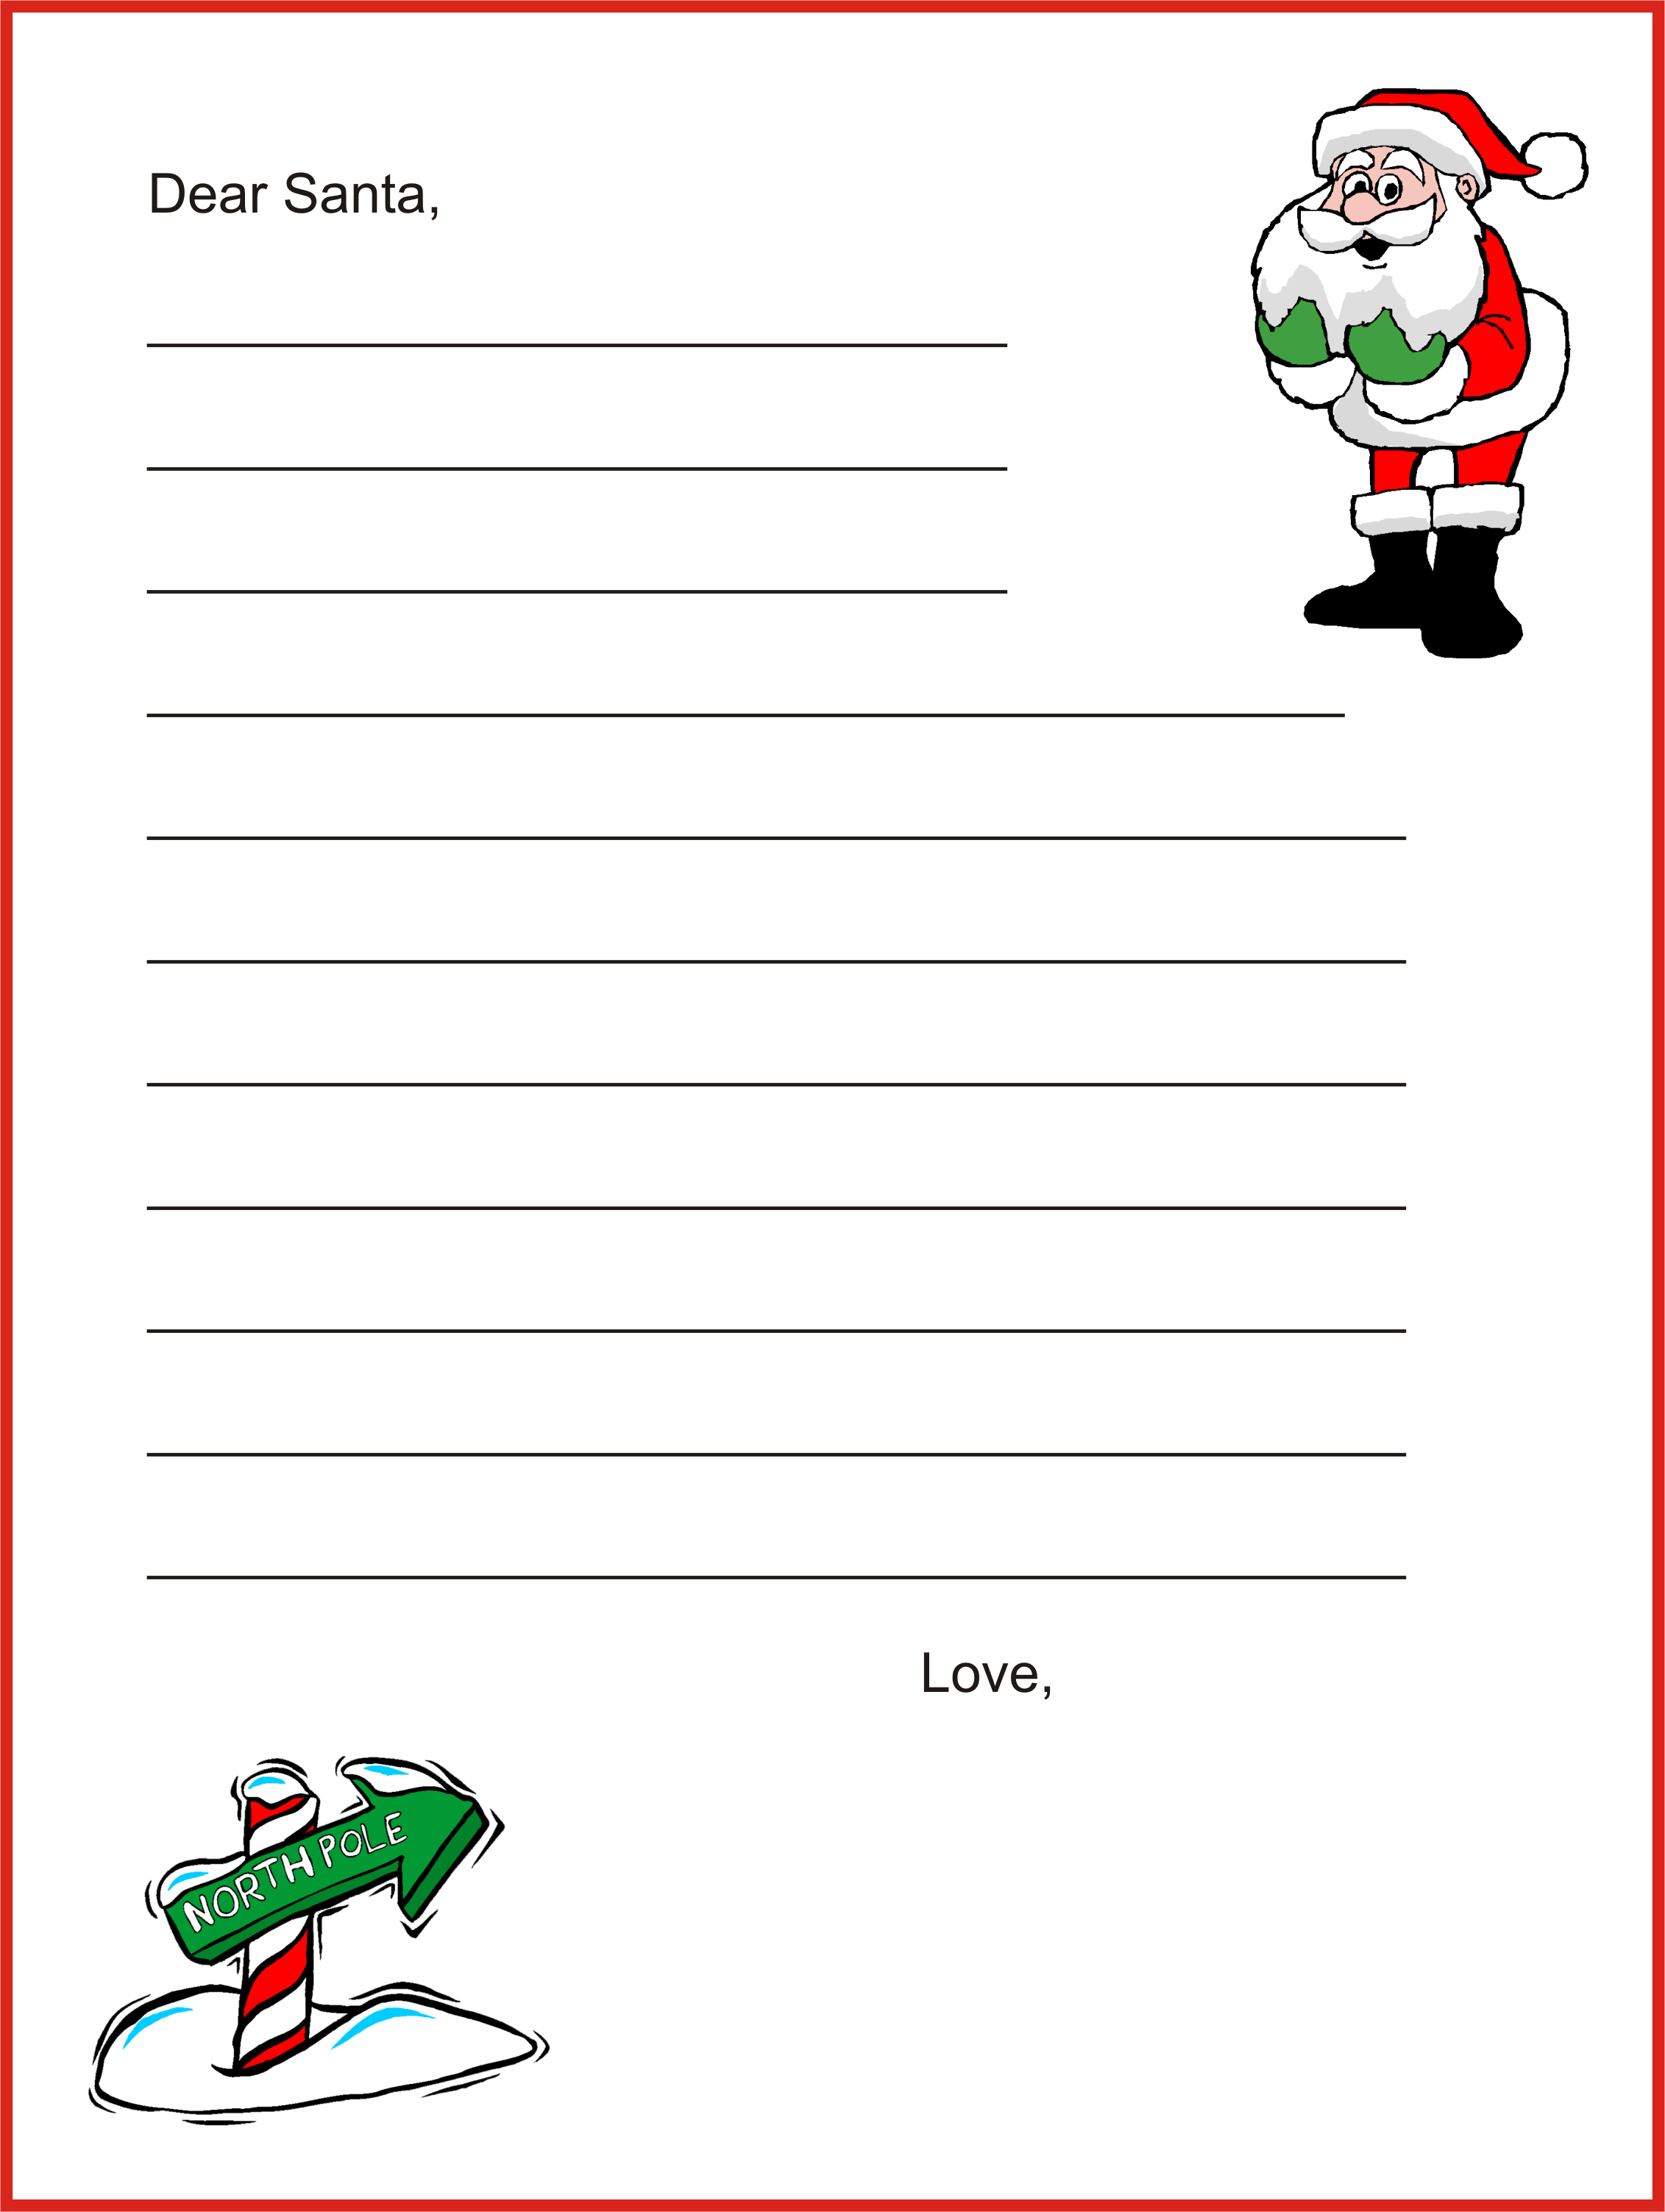 Dear Santa Letter Template - Christmas Letter Tips | - Free Printable Dear Santa Stationary